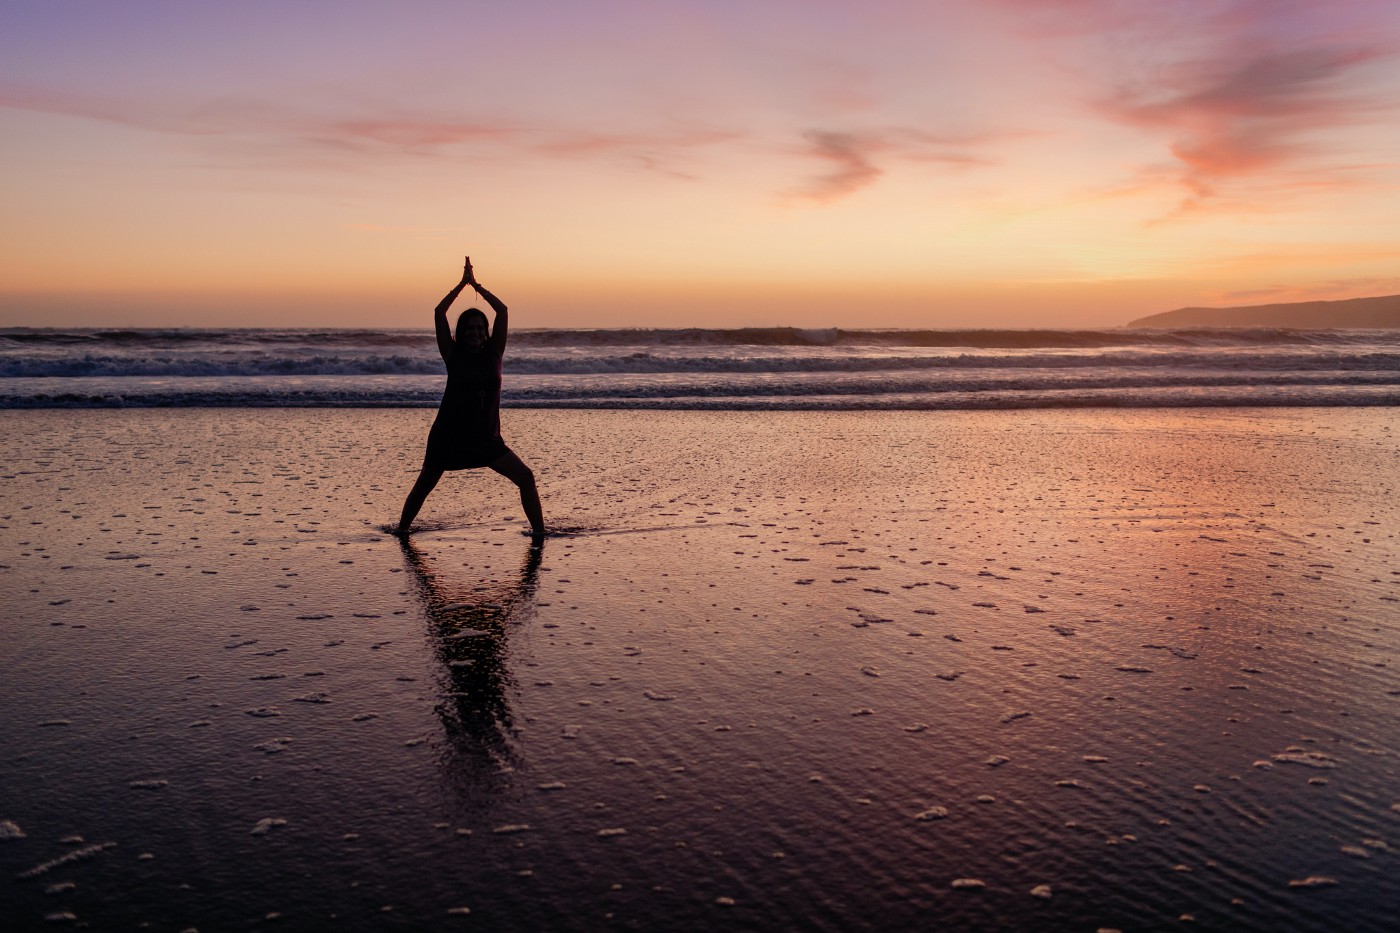 Sunset on the beach. Doing a Yoga and meditation pose